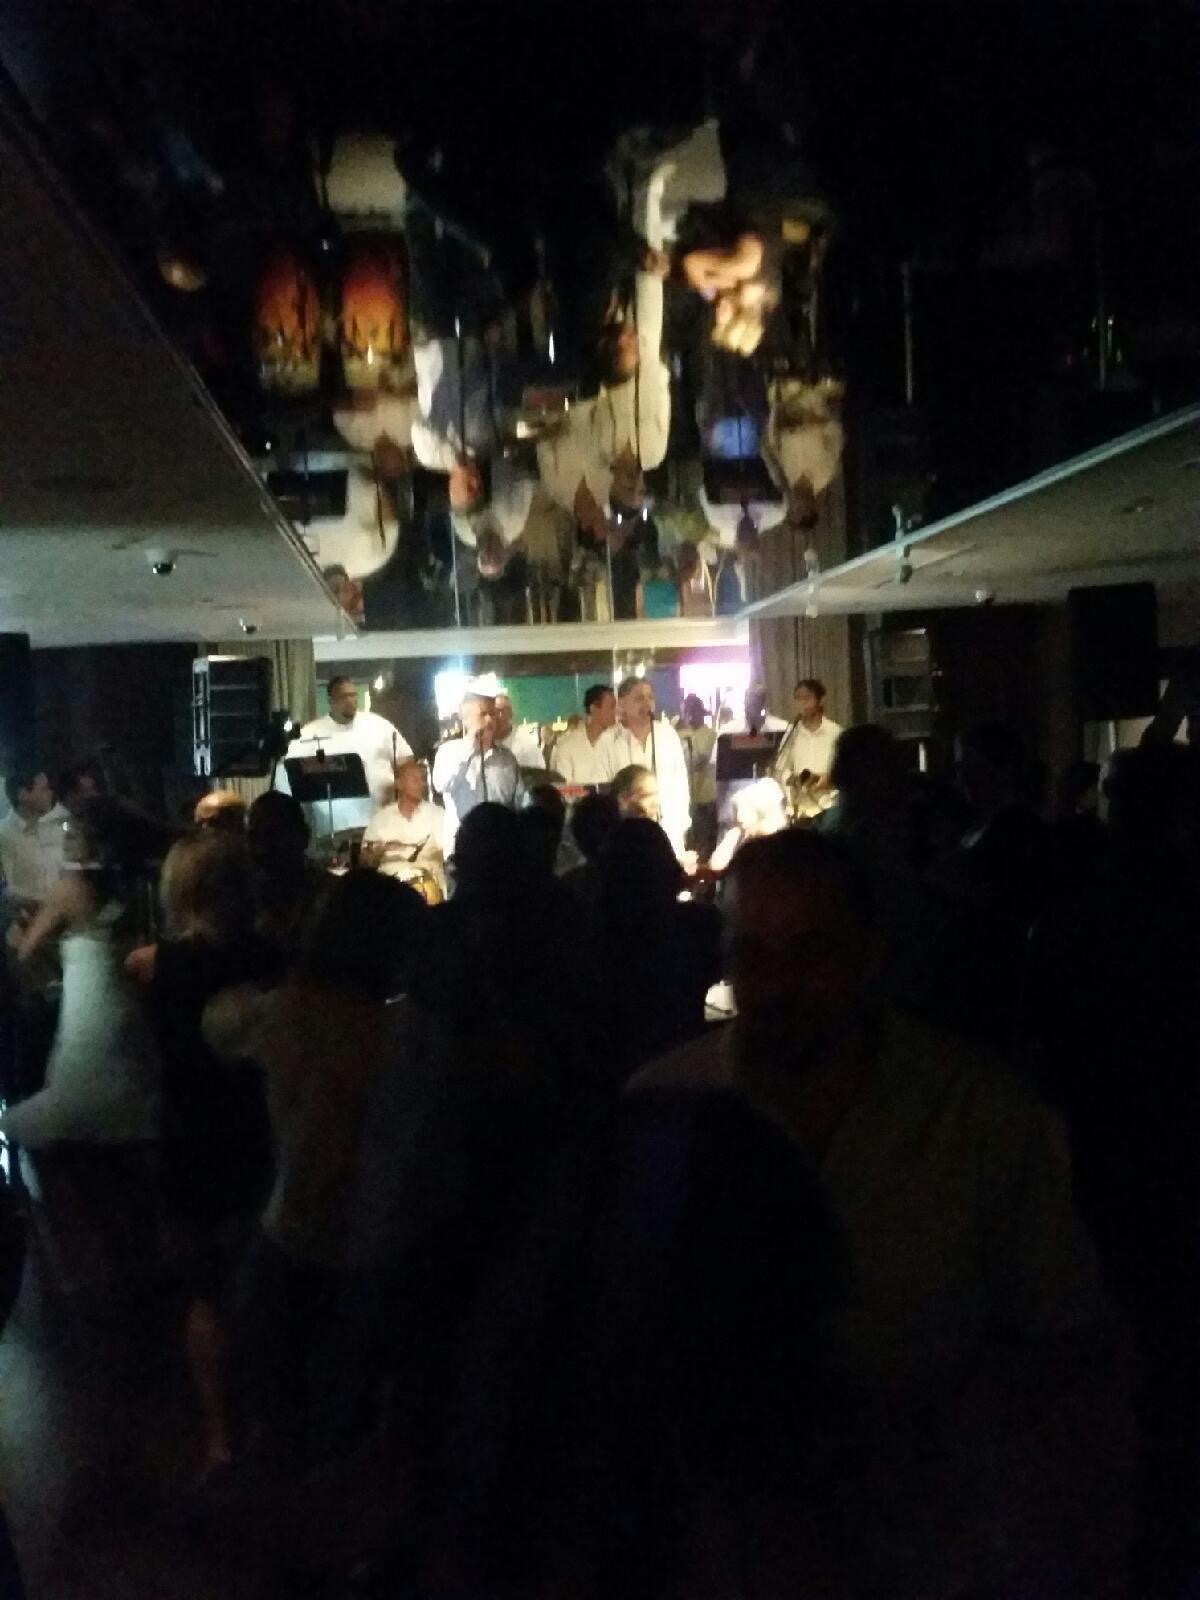 live salsa music in Puerto Rico? YES.